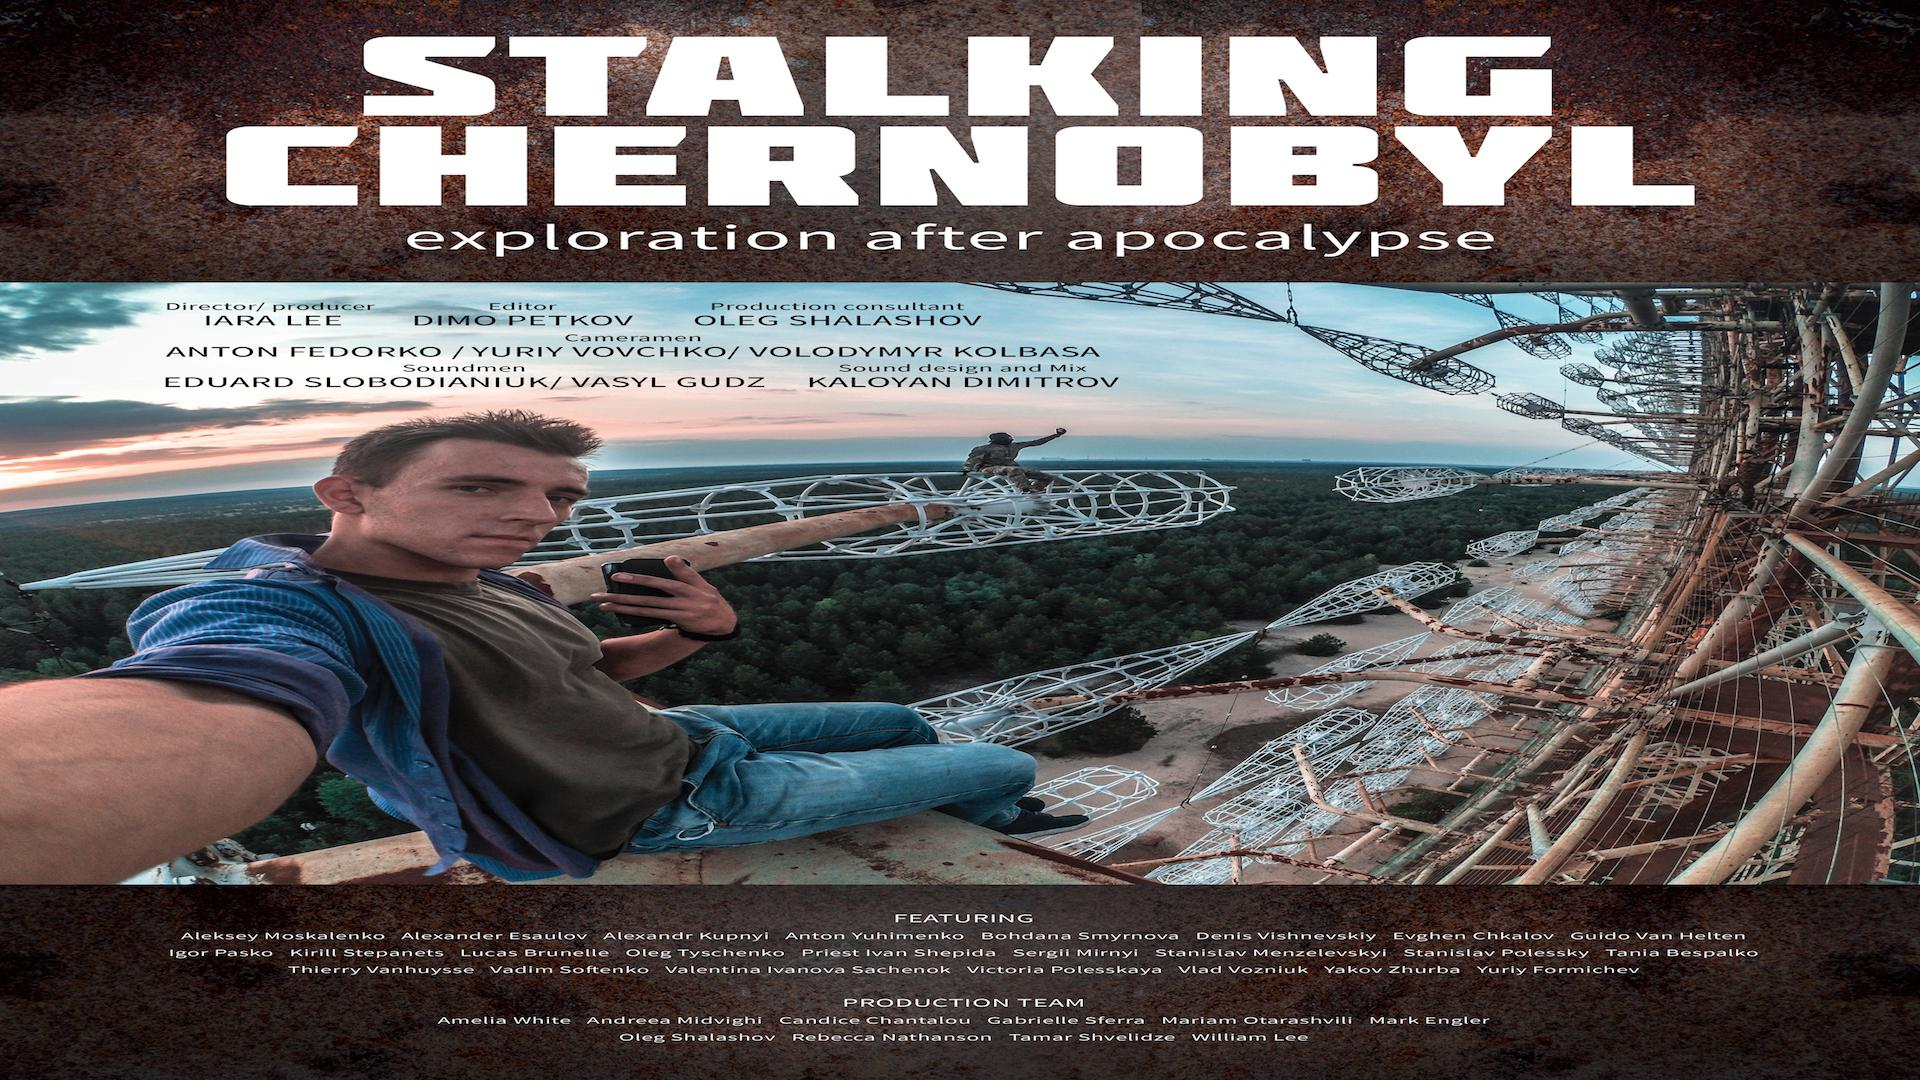 STALKING CHERNOBYL: exploration after apocalypse